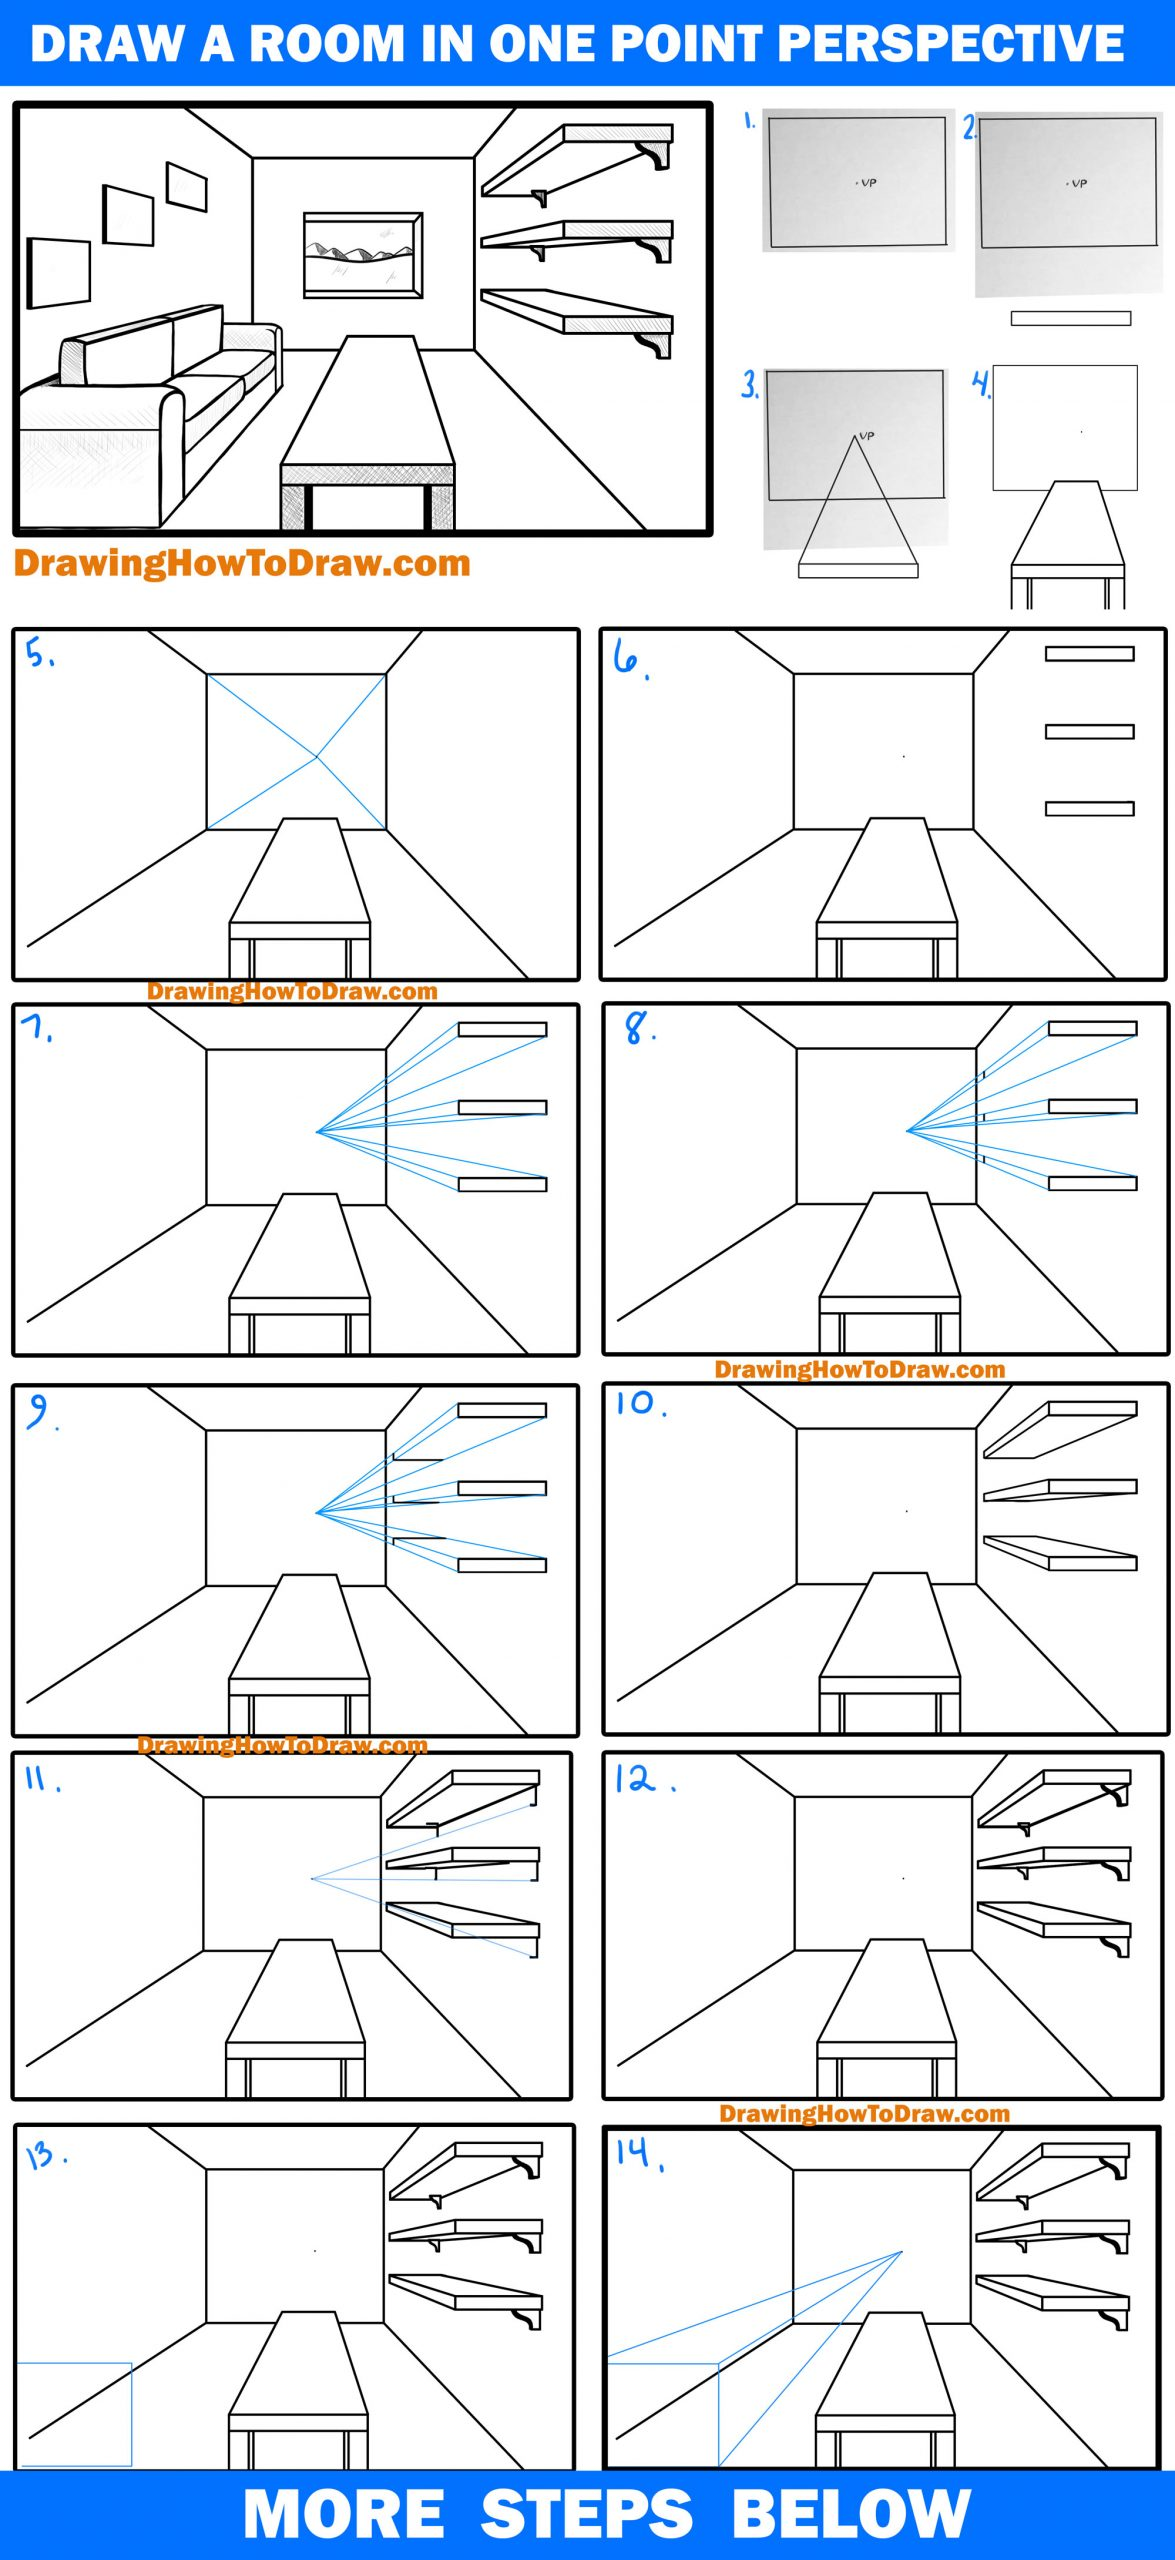 Learn How to Draw a Living Room in 1 Point Perspective Easy Step by Step Drawing Tutorial